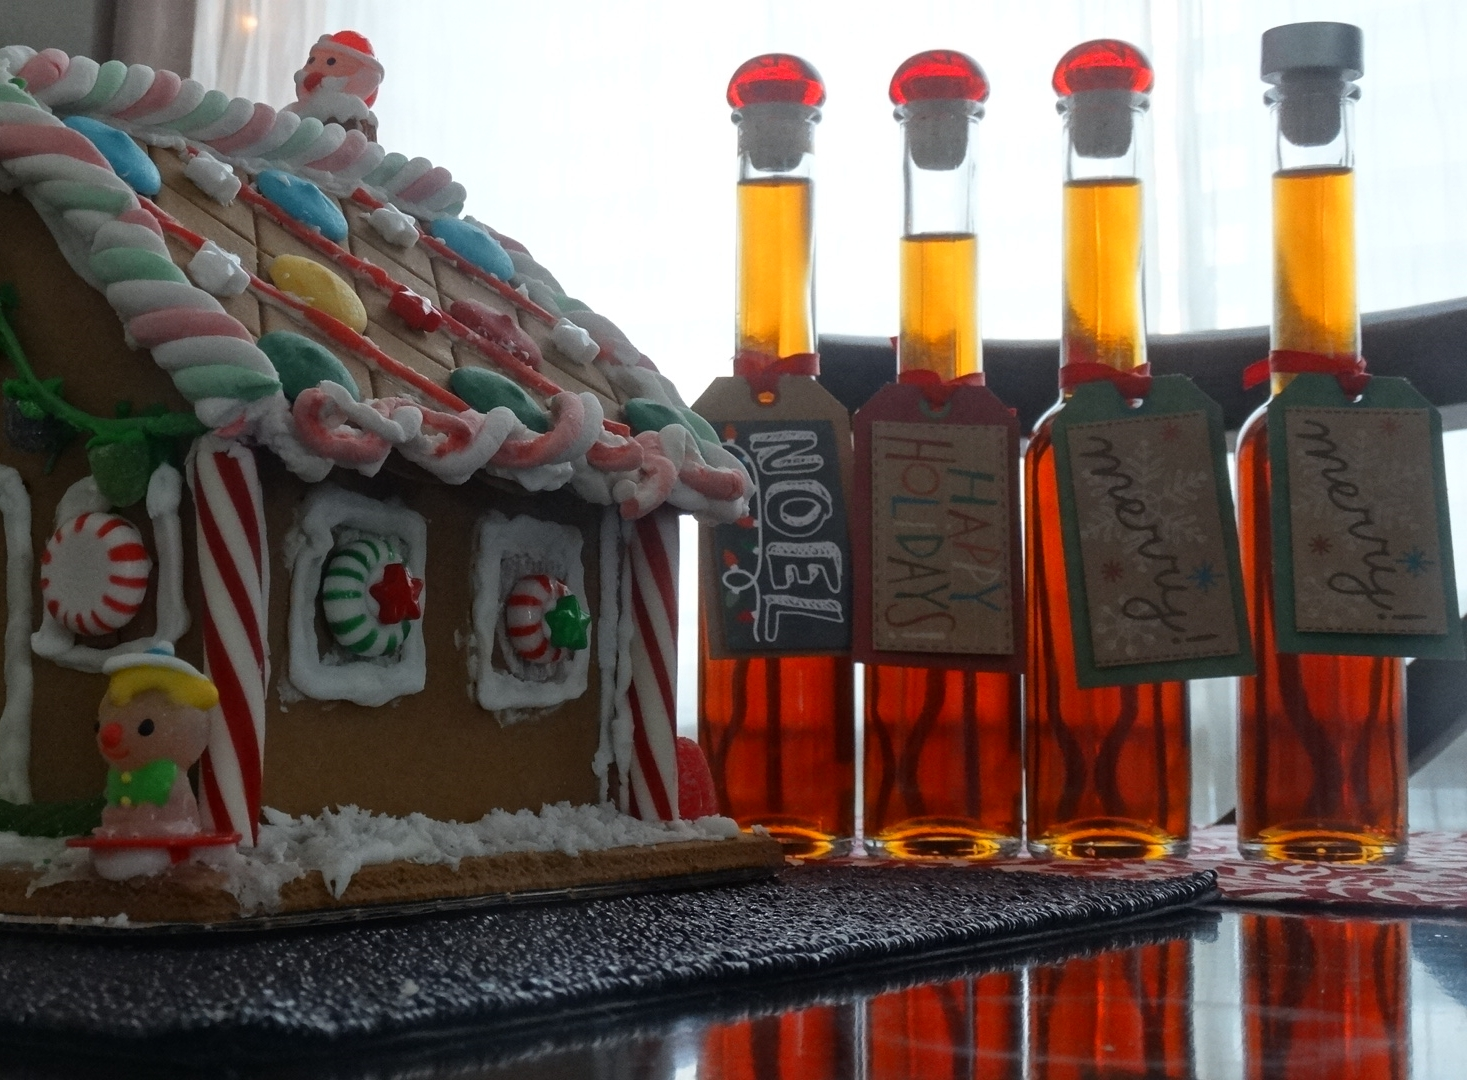 Manhattan Mixers - Get creative with the presentation of your homemade gifts with custom tags, labels and jars (or in this case, bottles).